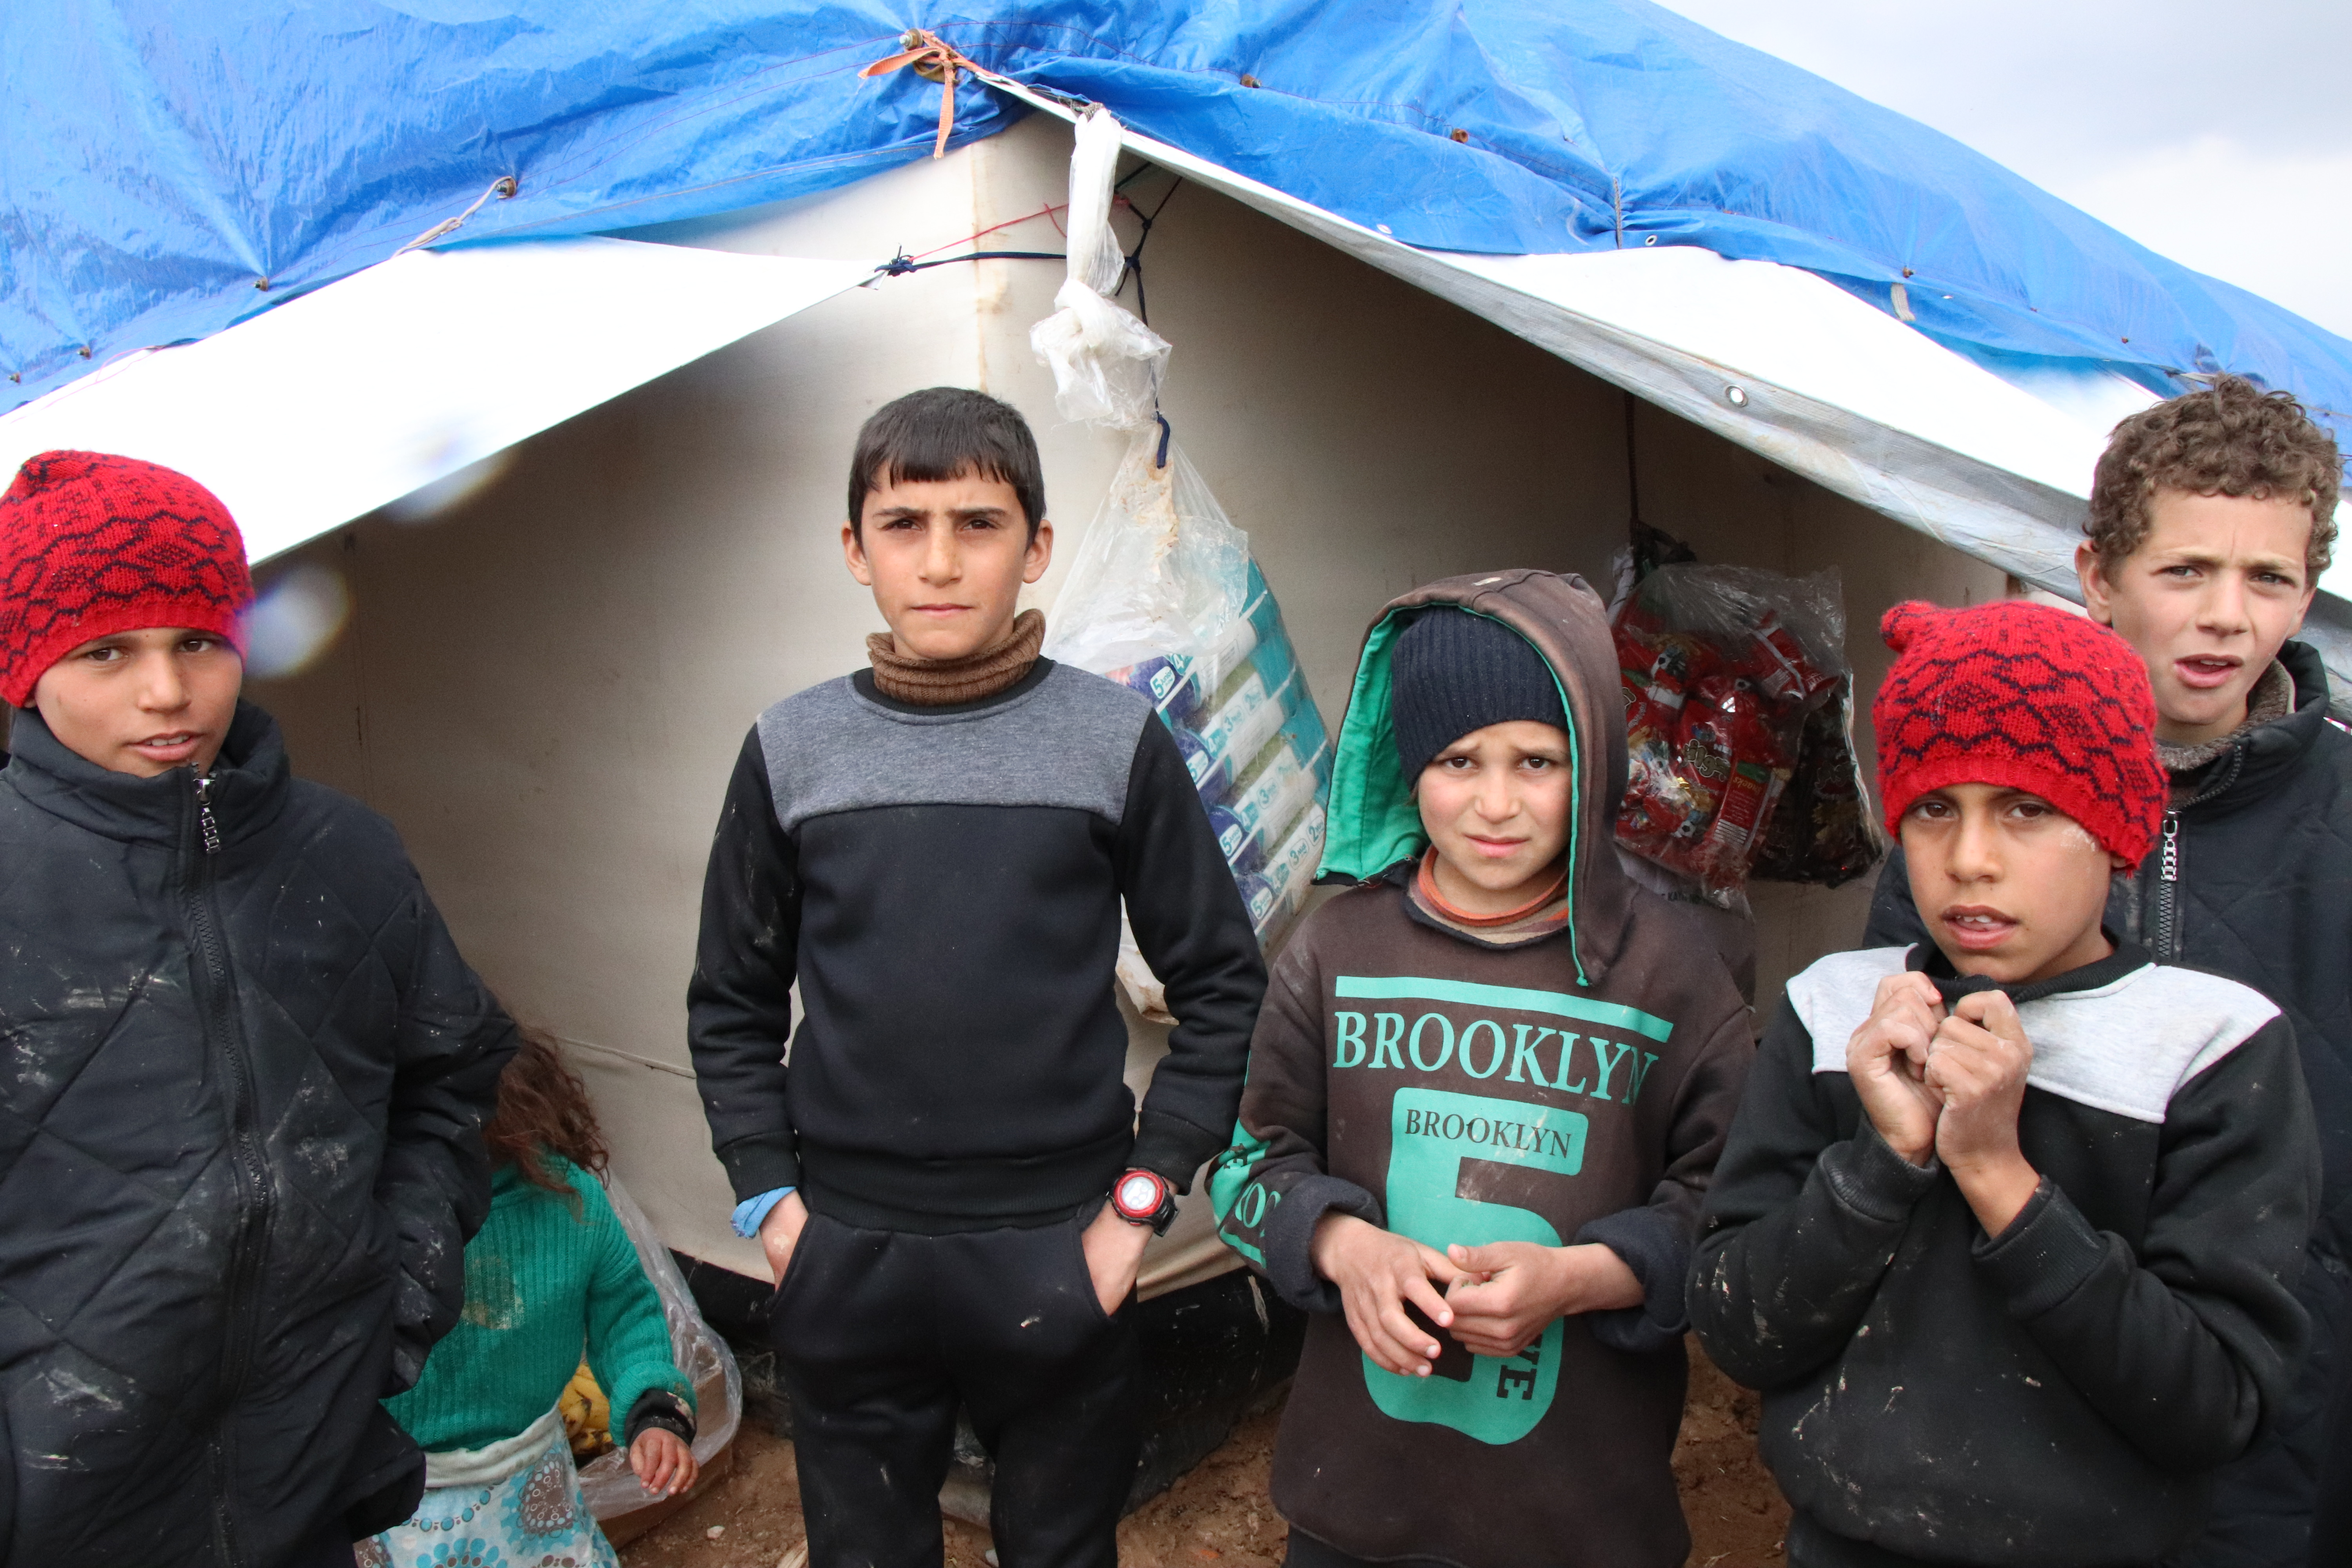 Children, pictured in al-Hol Camp, Syria, on March 4, 2019, say they felt safer living in a war zone than they do in the camp, because they were told that IS militants were protecting them.